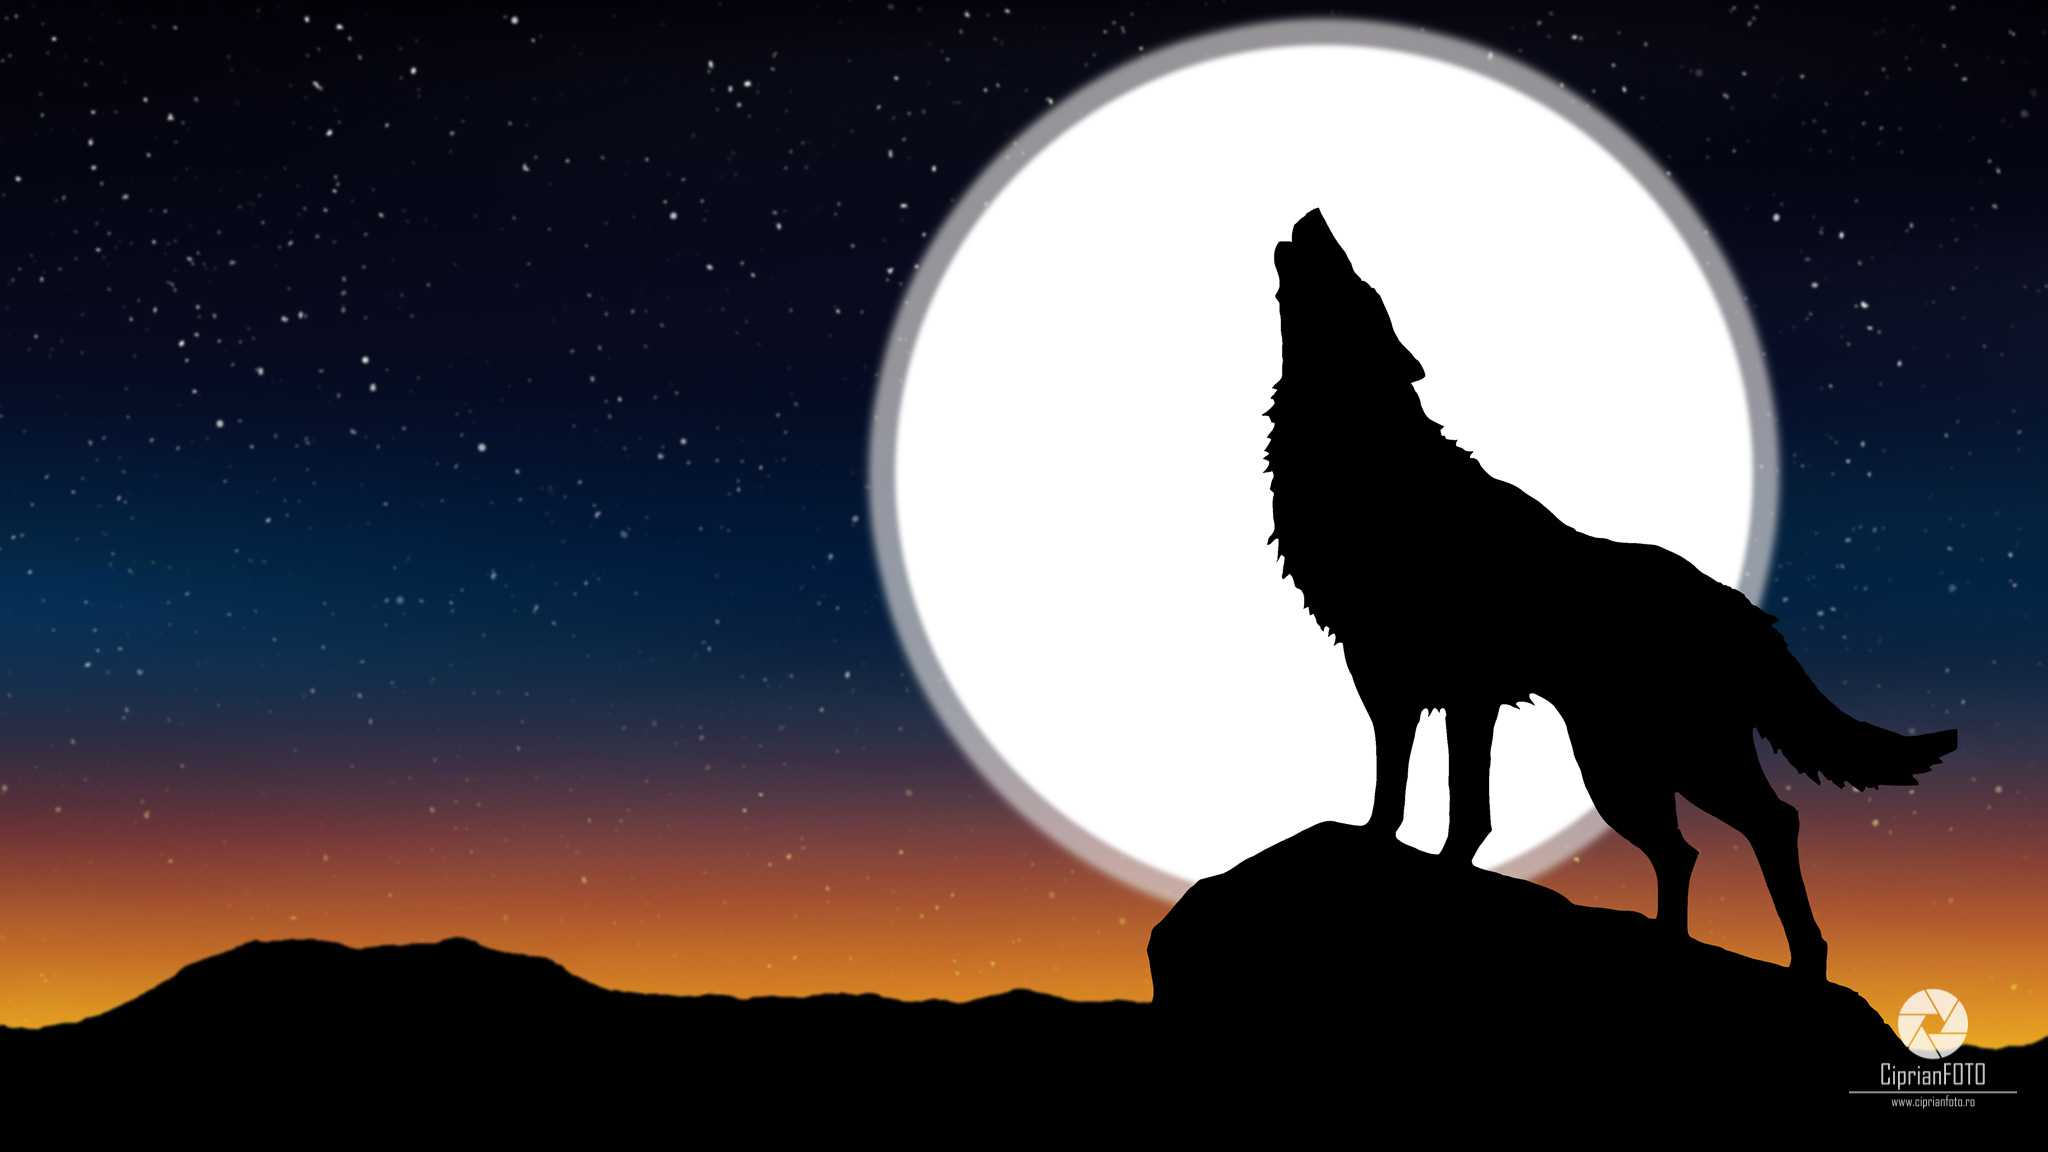 Howling The Wolf At The Moon, Photoshop Manipulation Tutorial, CiprianFOTO